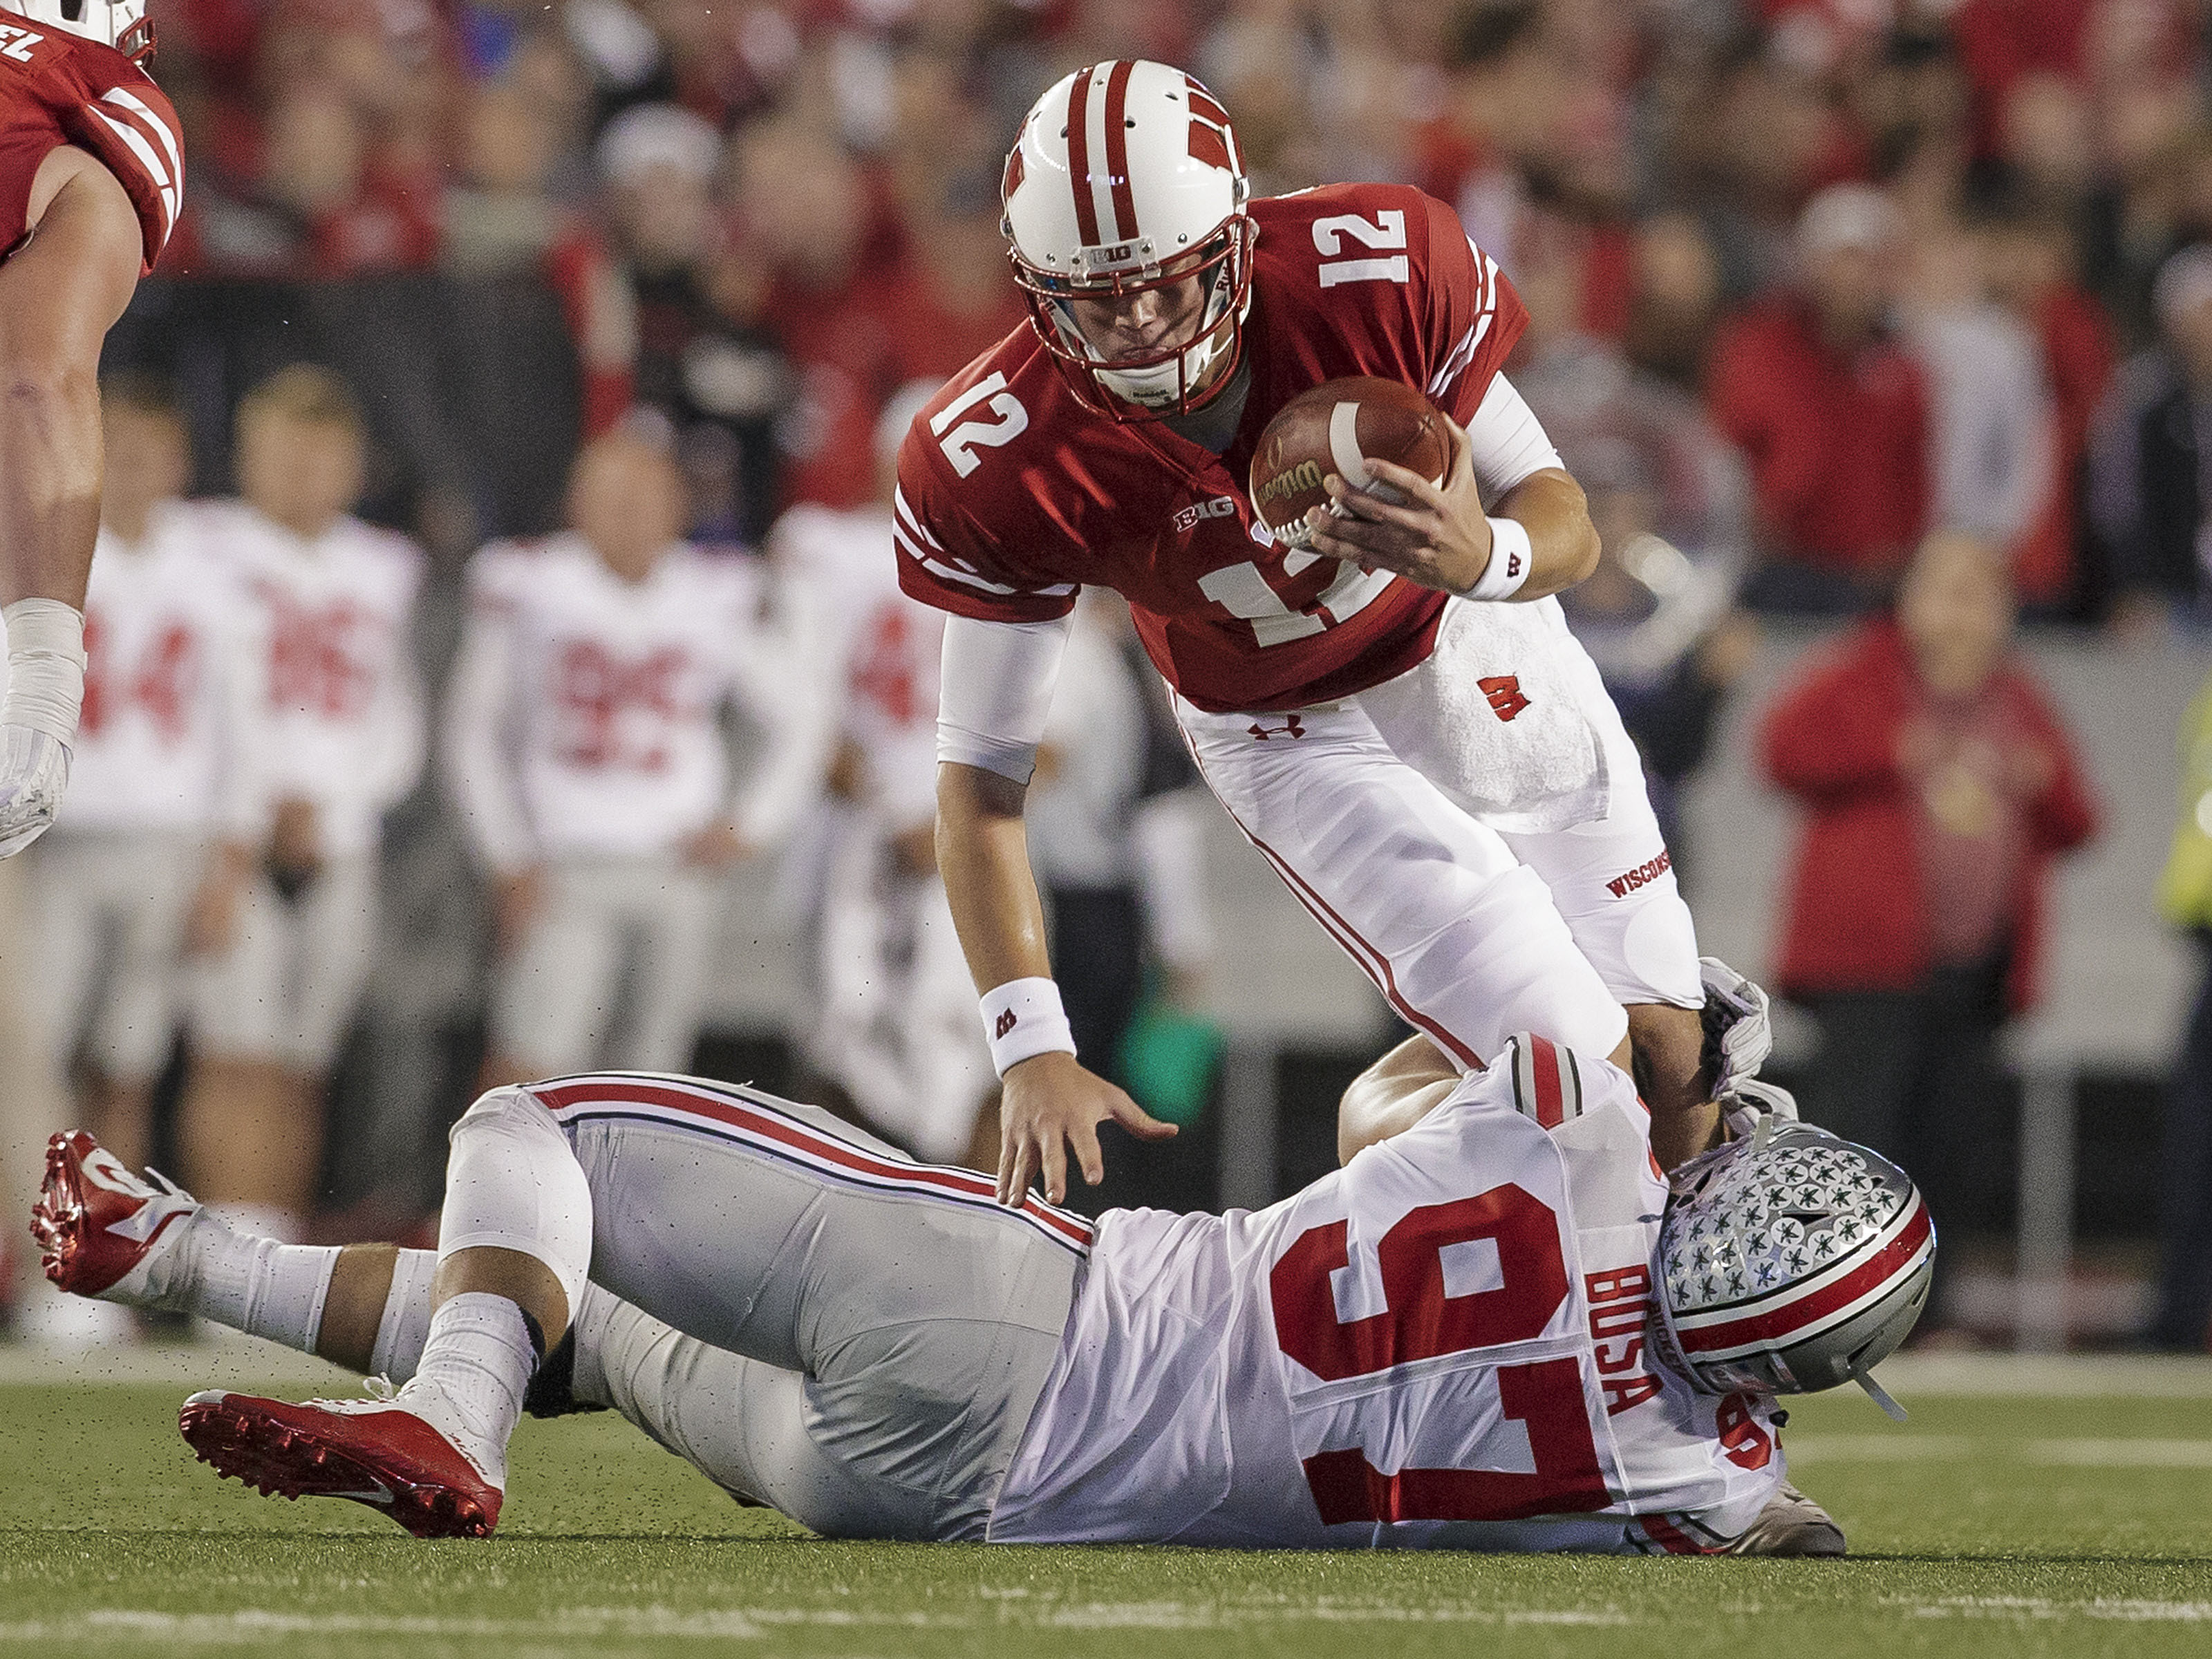 NCAA FOOTBALL: OCT 15 Ohio State at Wisconsin